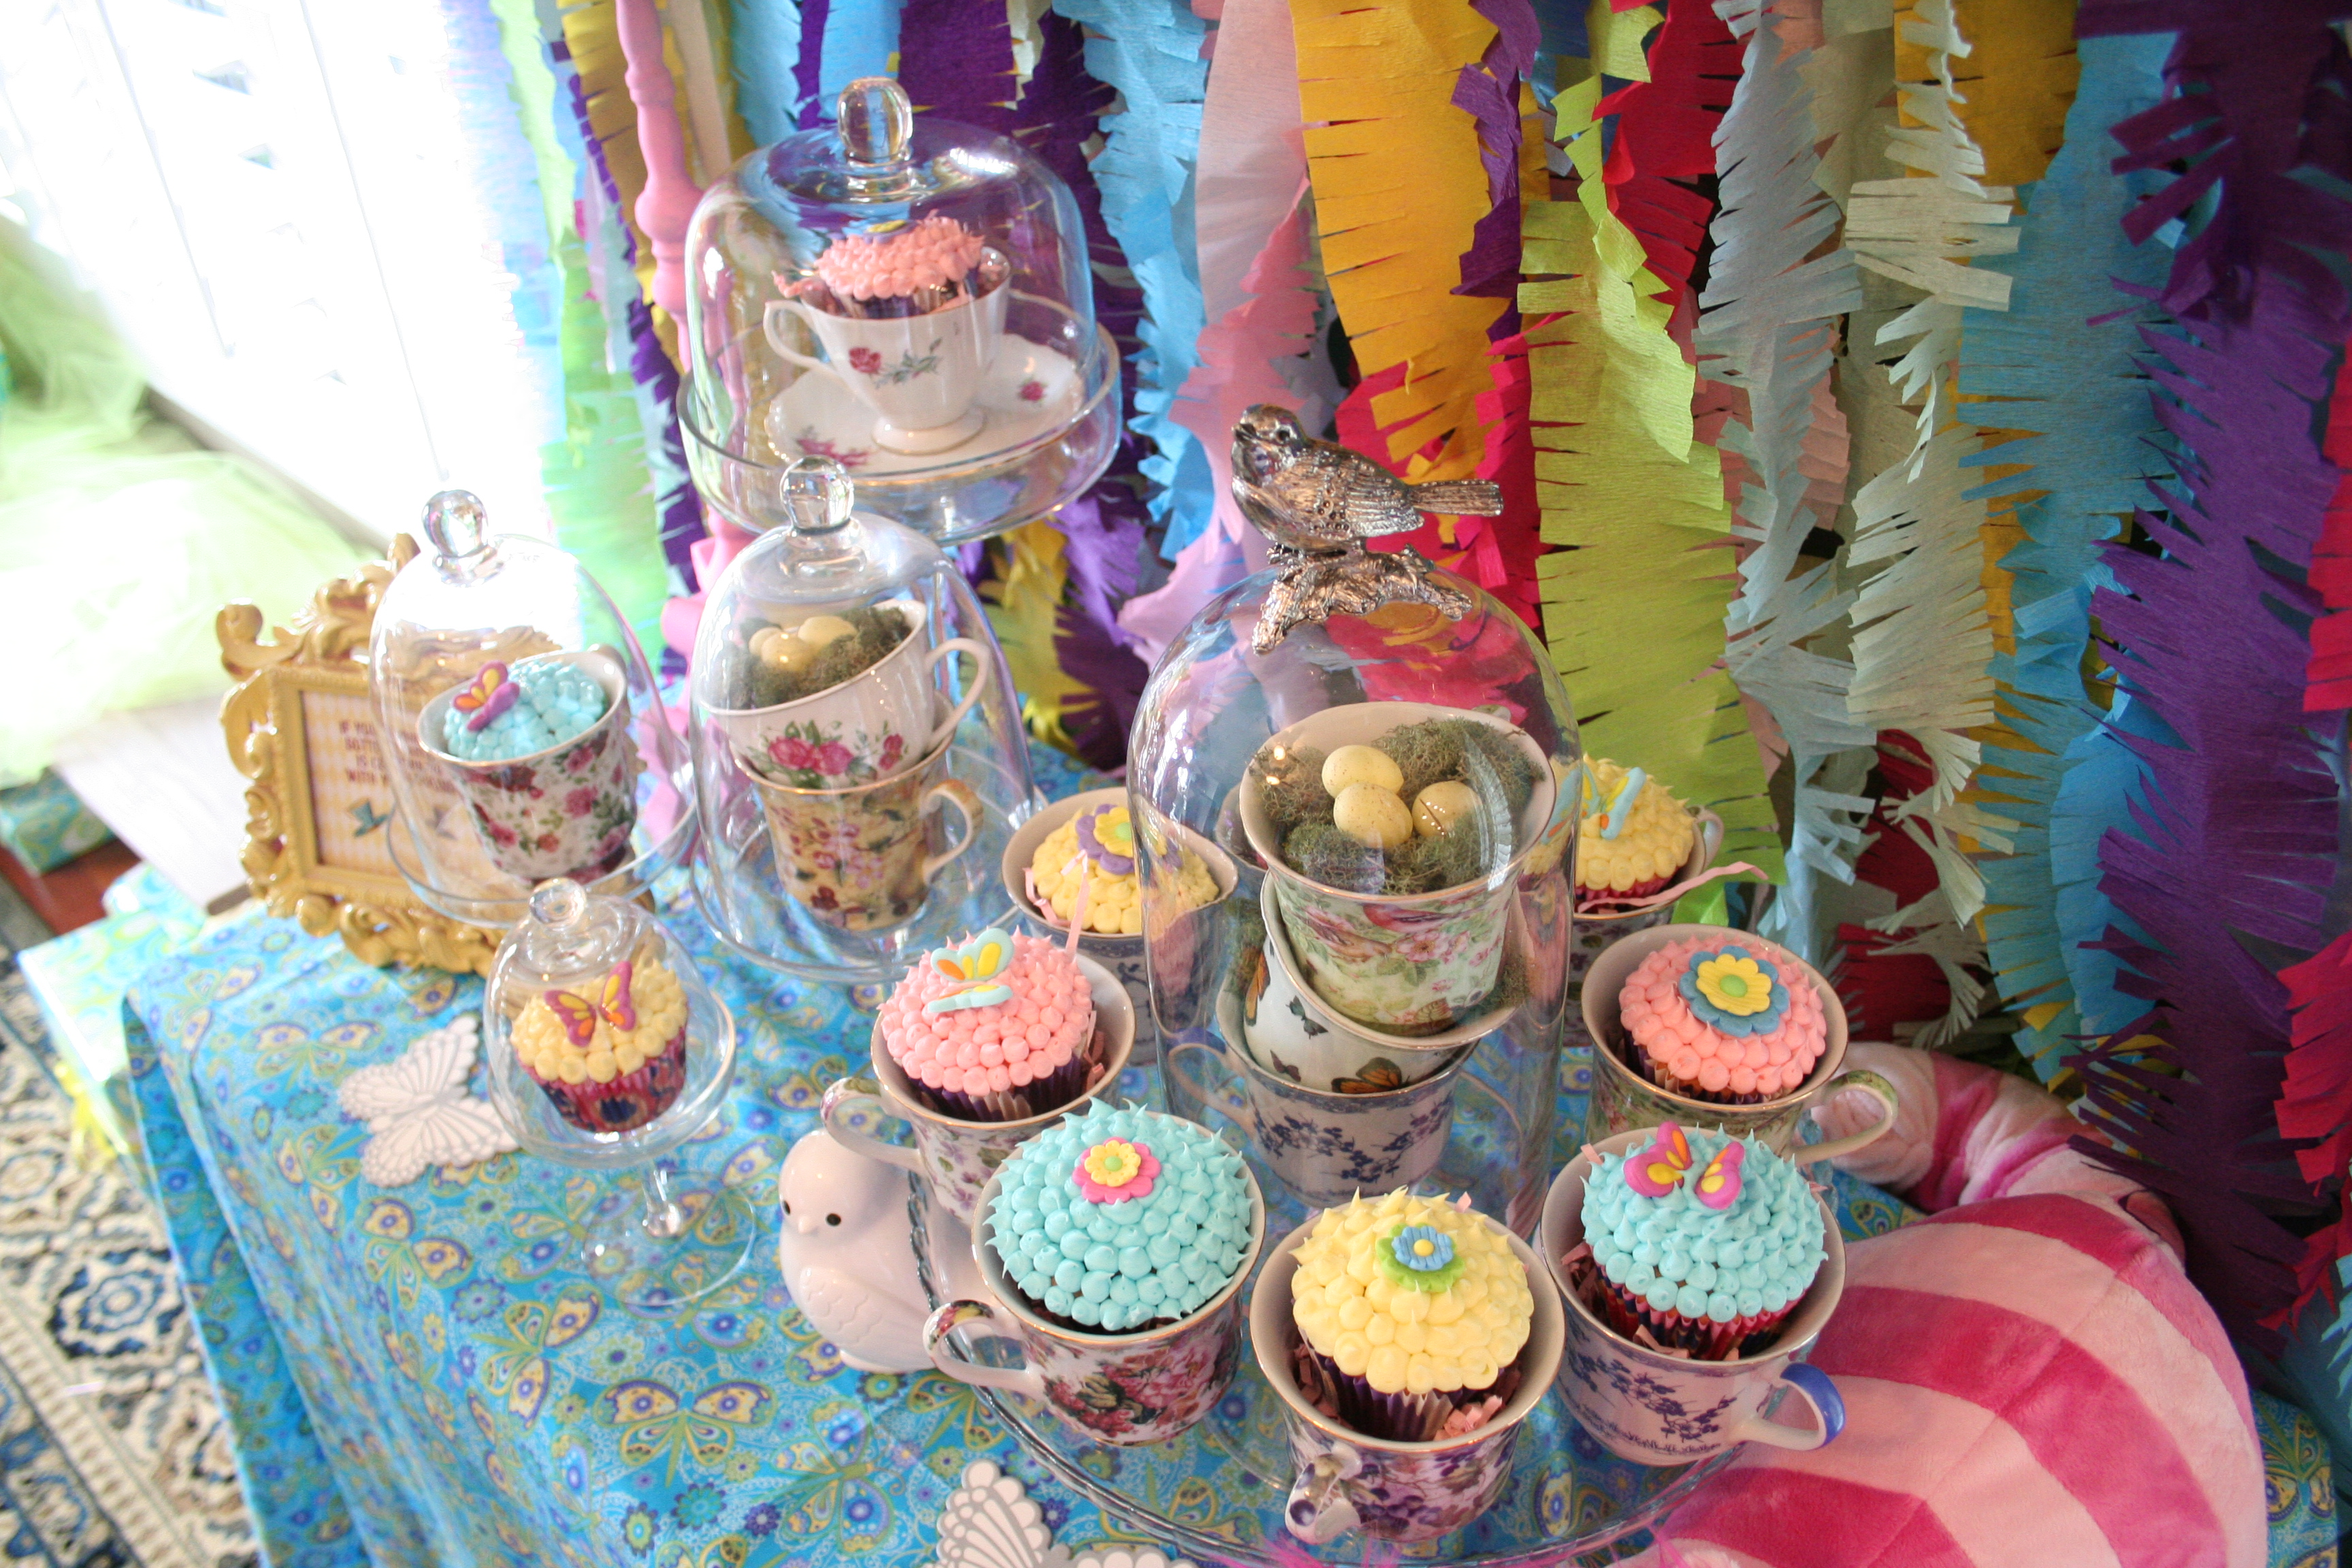 Alice in Wonderland Baby Shower - Cupcake Display